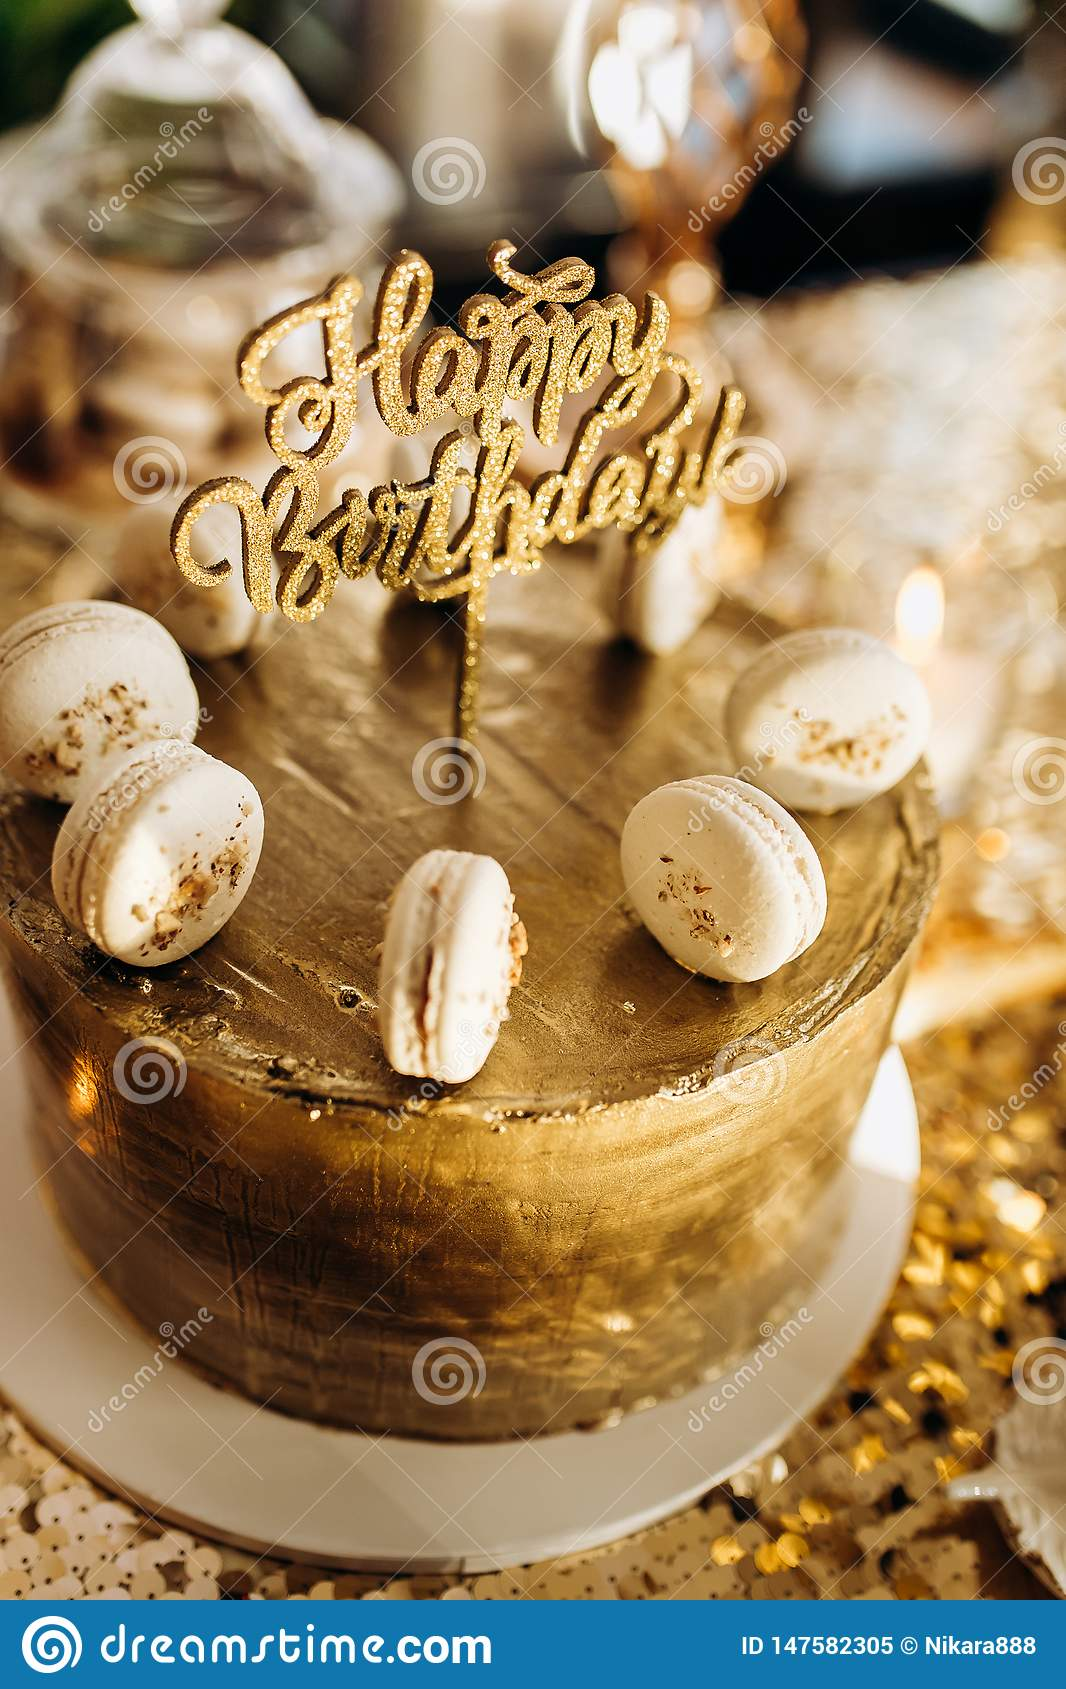 Wondrous A Golden Birthday Cake Is Decorated With Macaroni Stock Image Funny Birthday Cards Online Alyptdamsfinfo